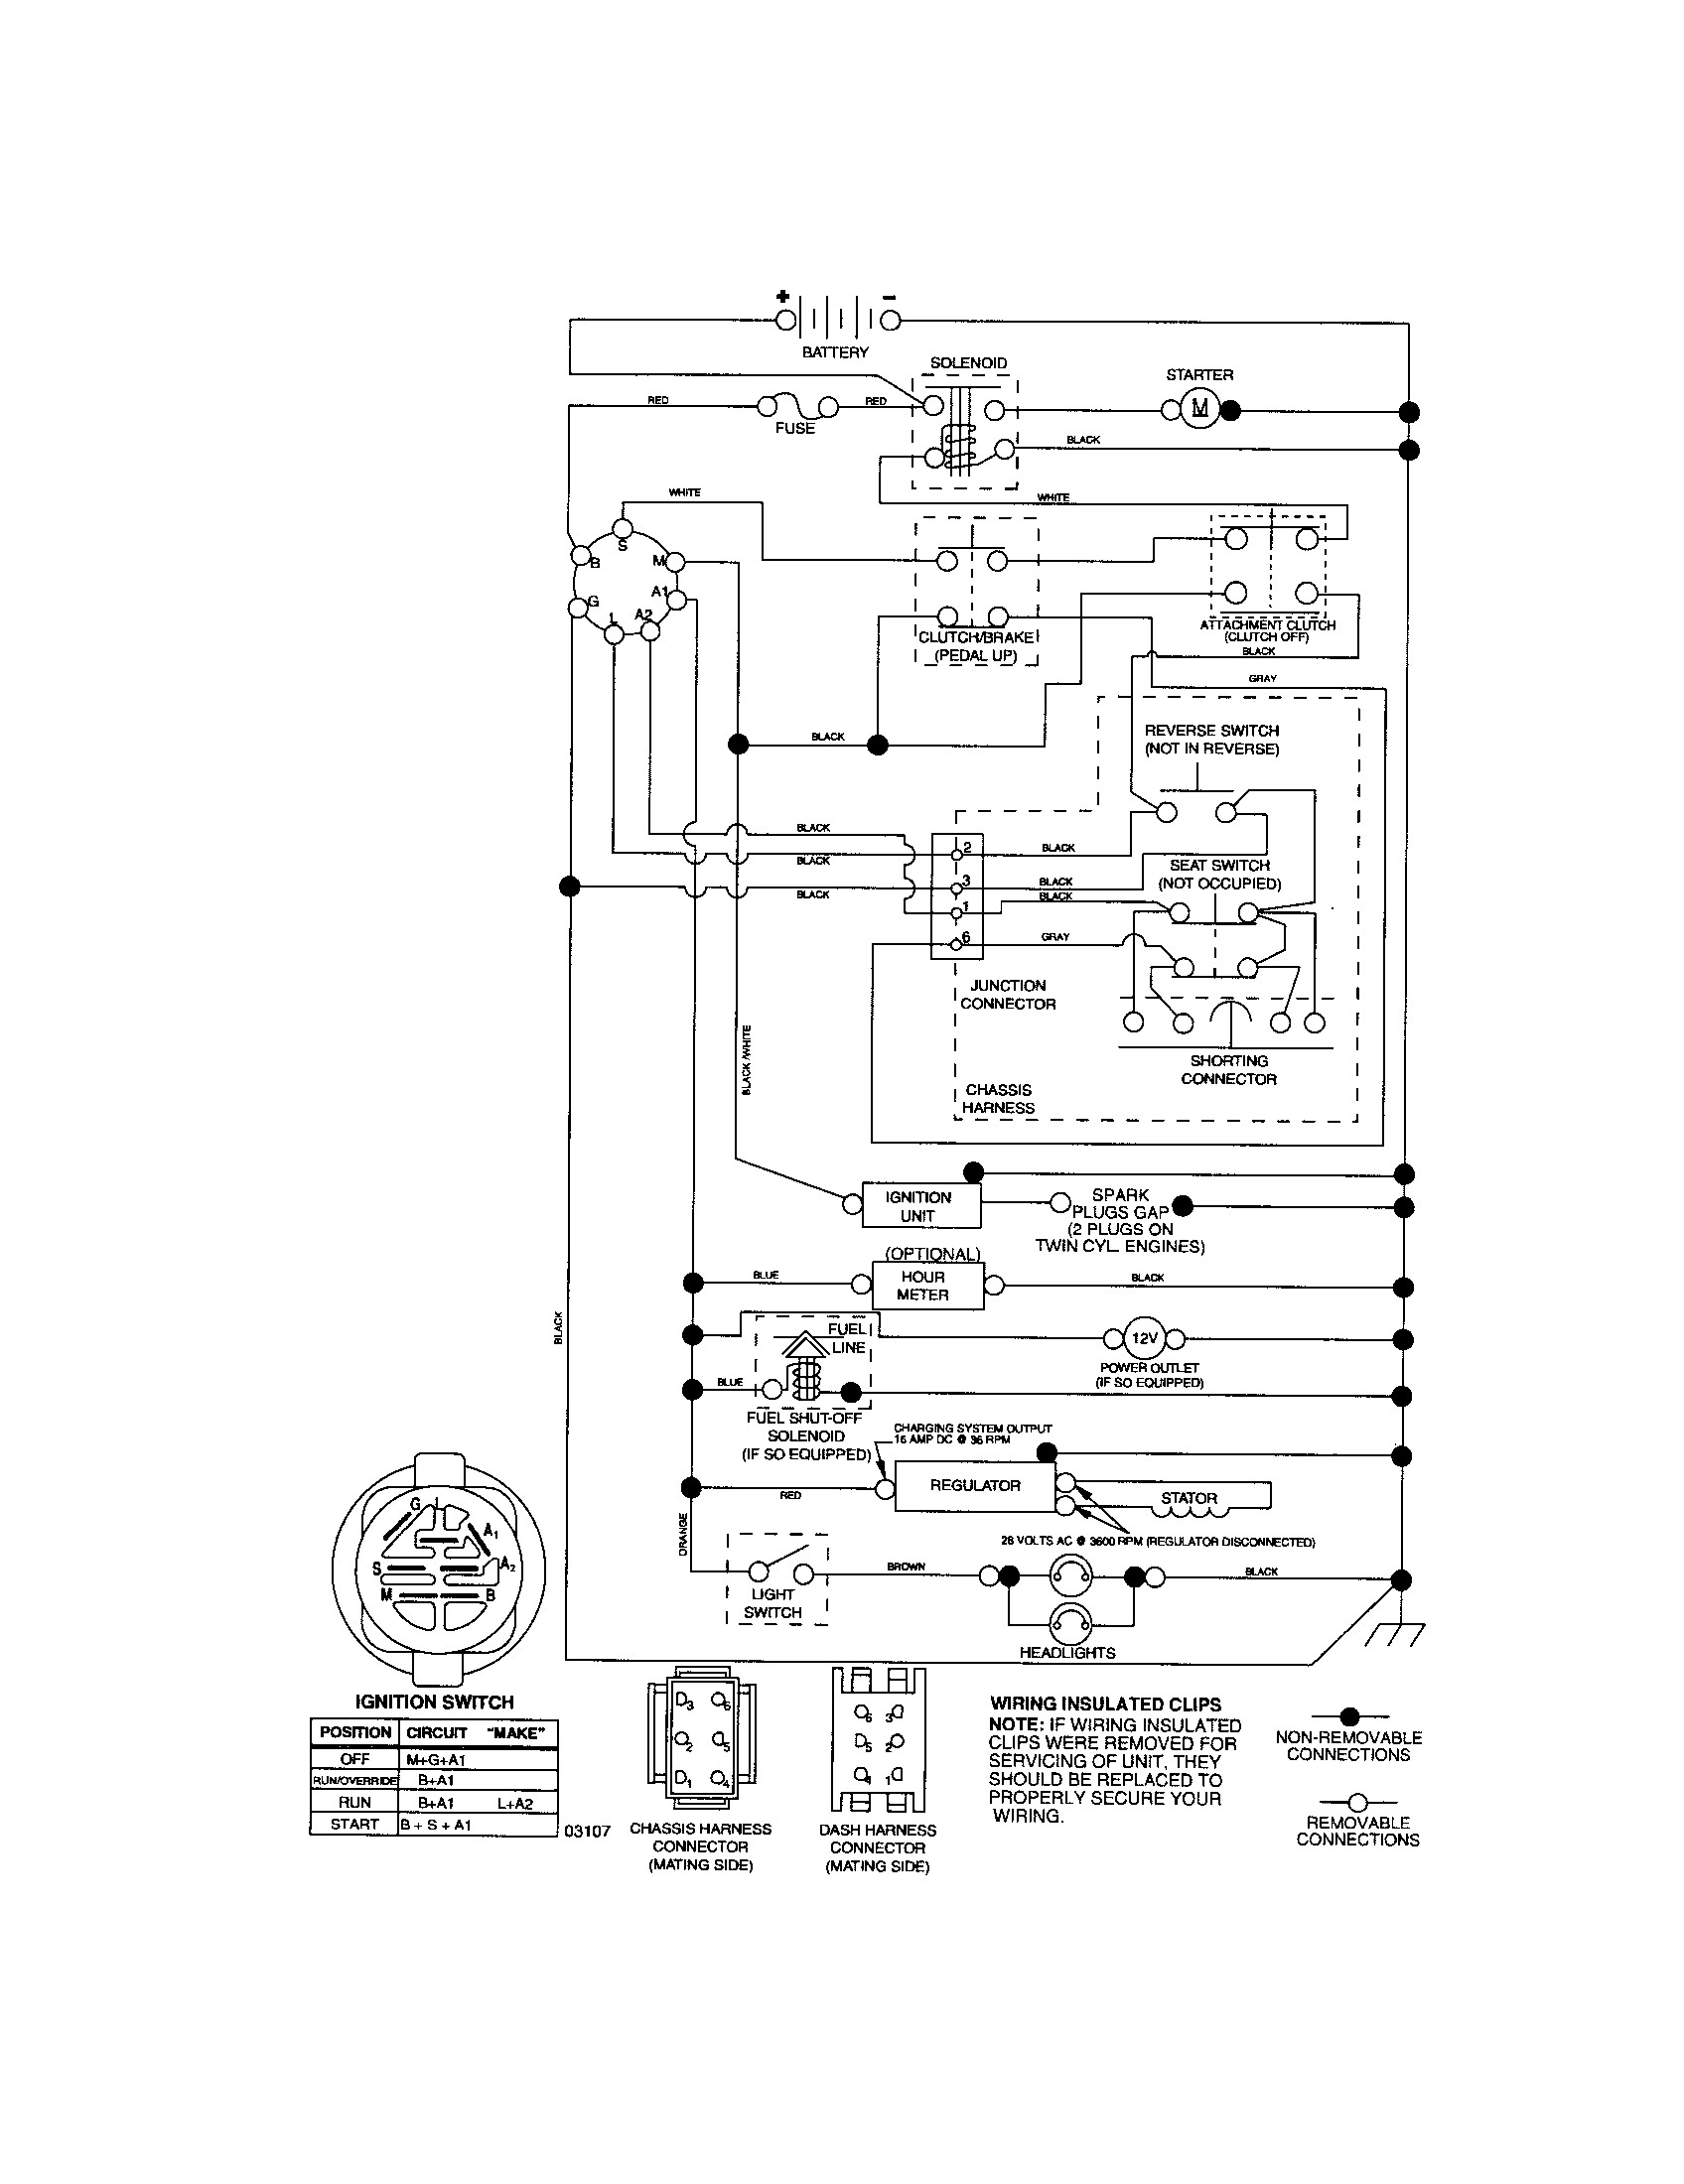 hight resolution of craftsman lawn mower model 917 wiring diagram download craftsman lawn tractor wiring diagram craftsman riding